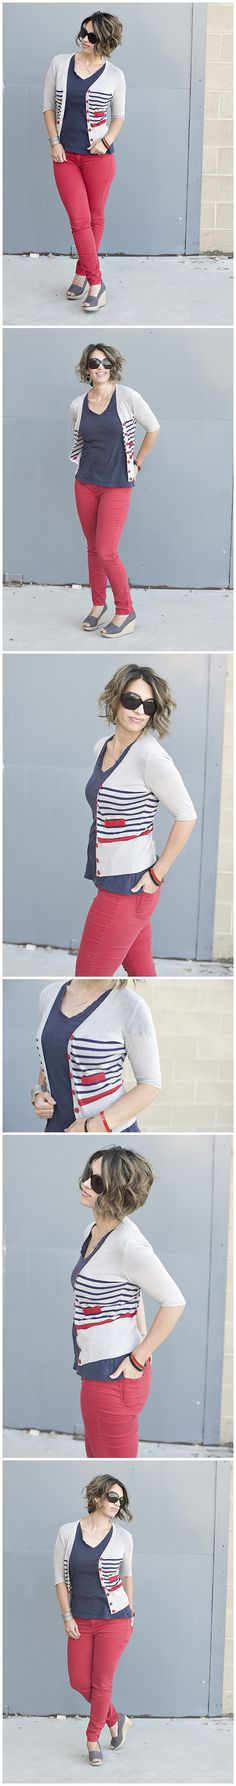 4th of July Women's Outfit | MyMommyStyle.com